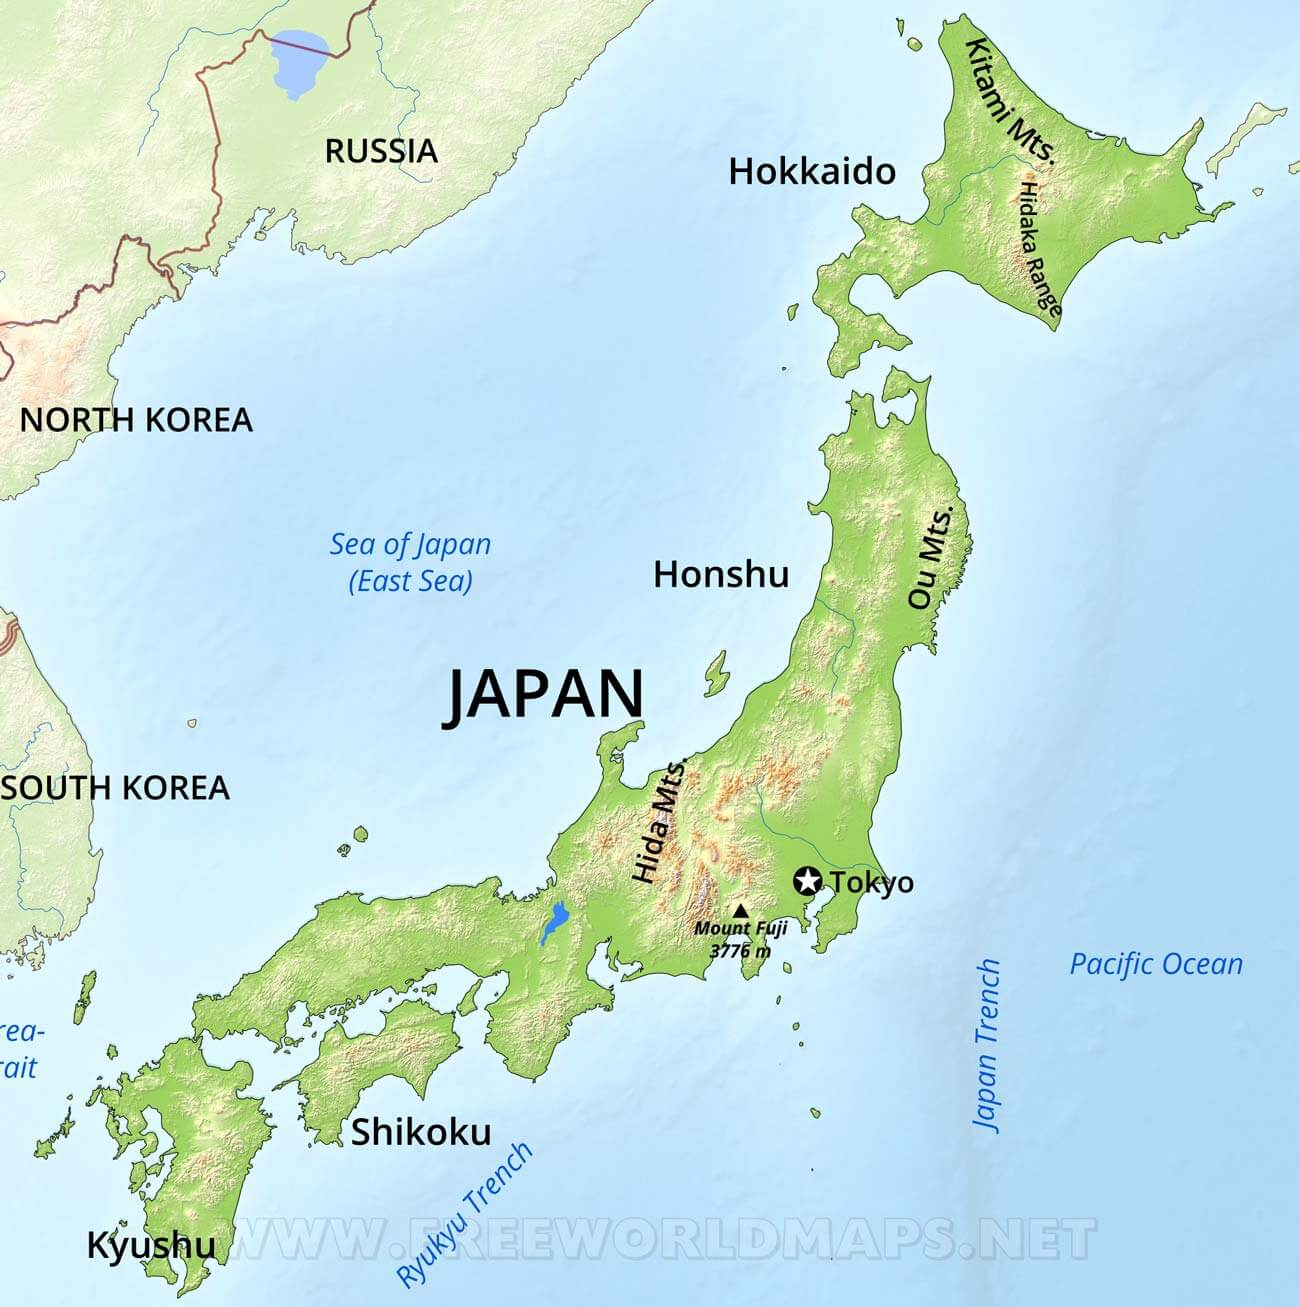 Japan Physical Map on weather map of japan, population density map of japan, resource map of japan, climate map of japan, physical outline map of japan, timeline of japan, physical features geography, bodies of water map of japan, physical description of japan, tourism map of japan, vegetation map of japan, political map of japan, cities map of japan, latitude map of japan, physical activities of japan, region map of japan, colour map of japan, religion map of japan, language map of japan, physical characteristics of japan,